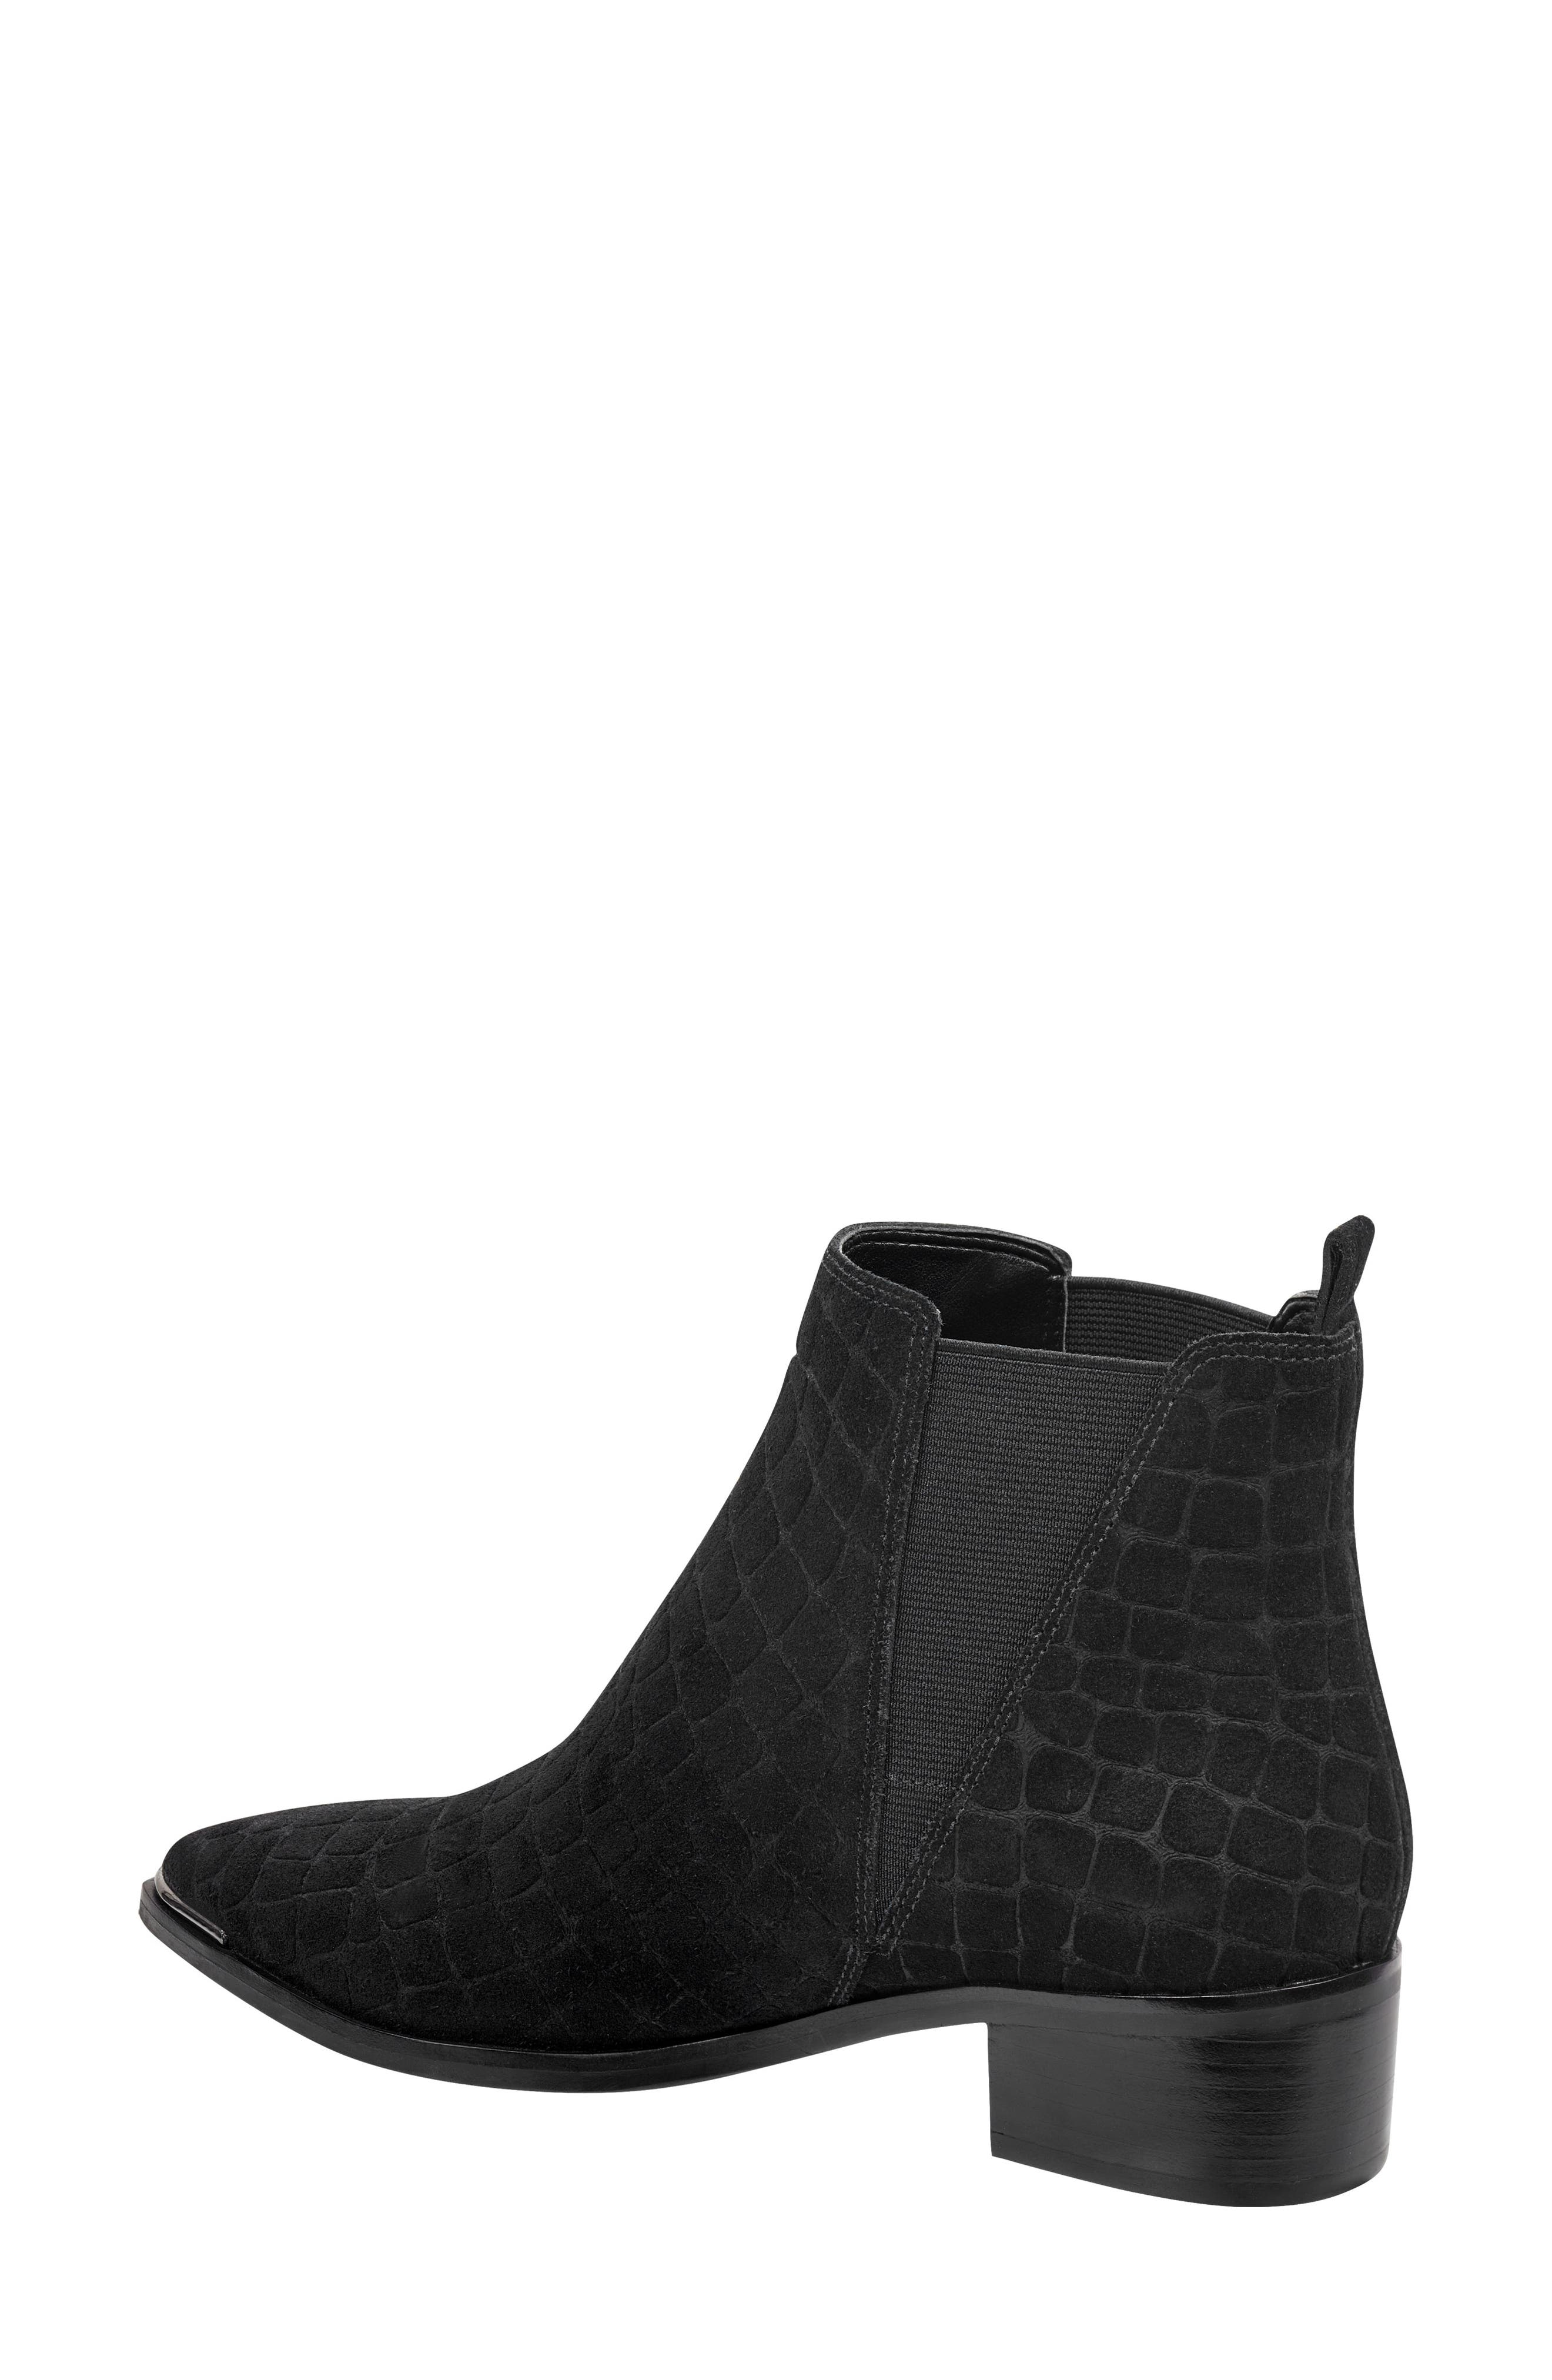 'Yale' Chelsea Boot,                             Alternate thumbnail 2, color,                             BLACK CROC EMBOSSED SUEDE